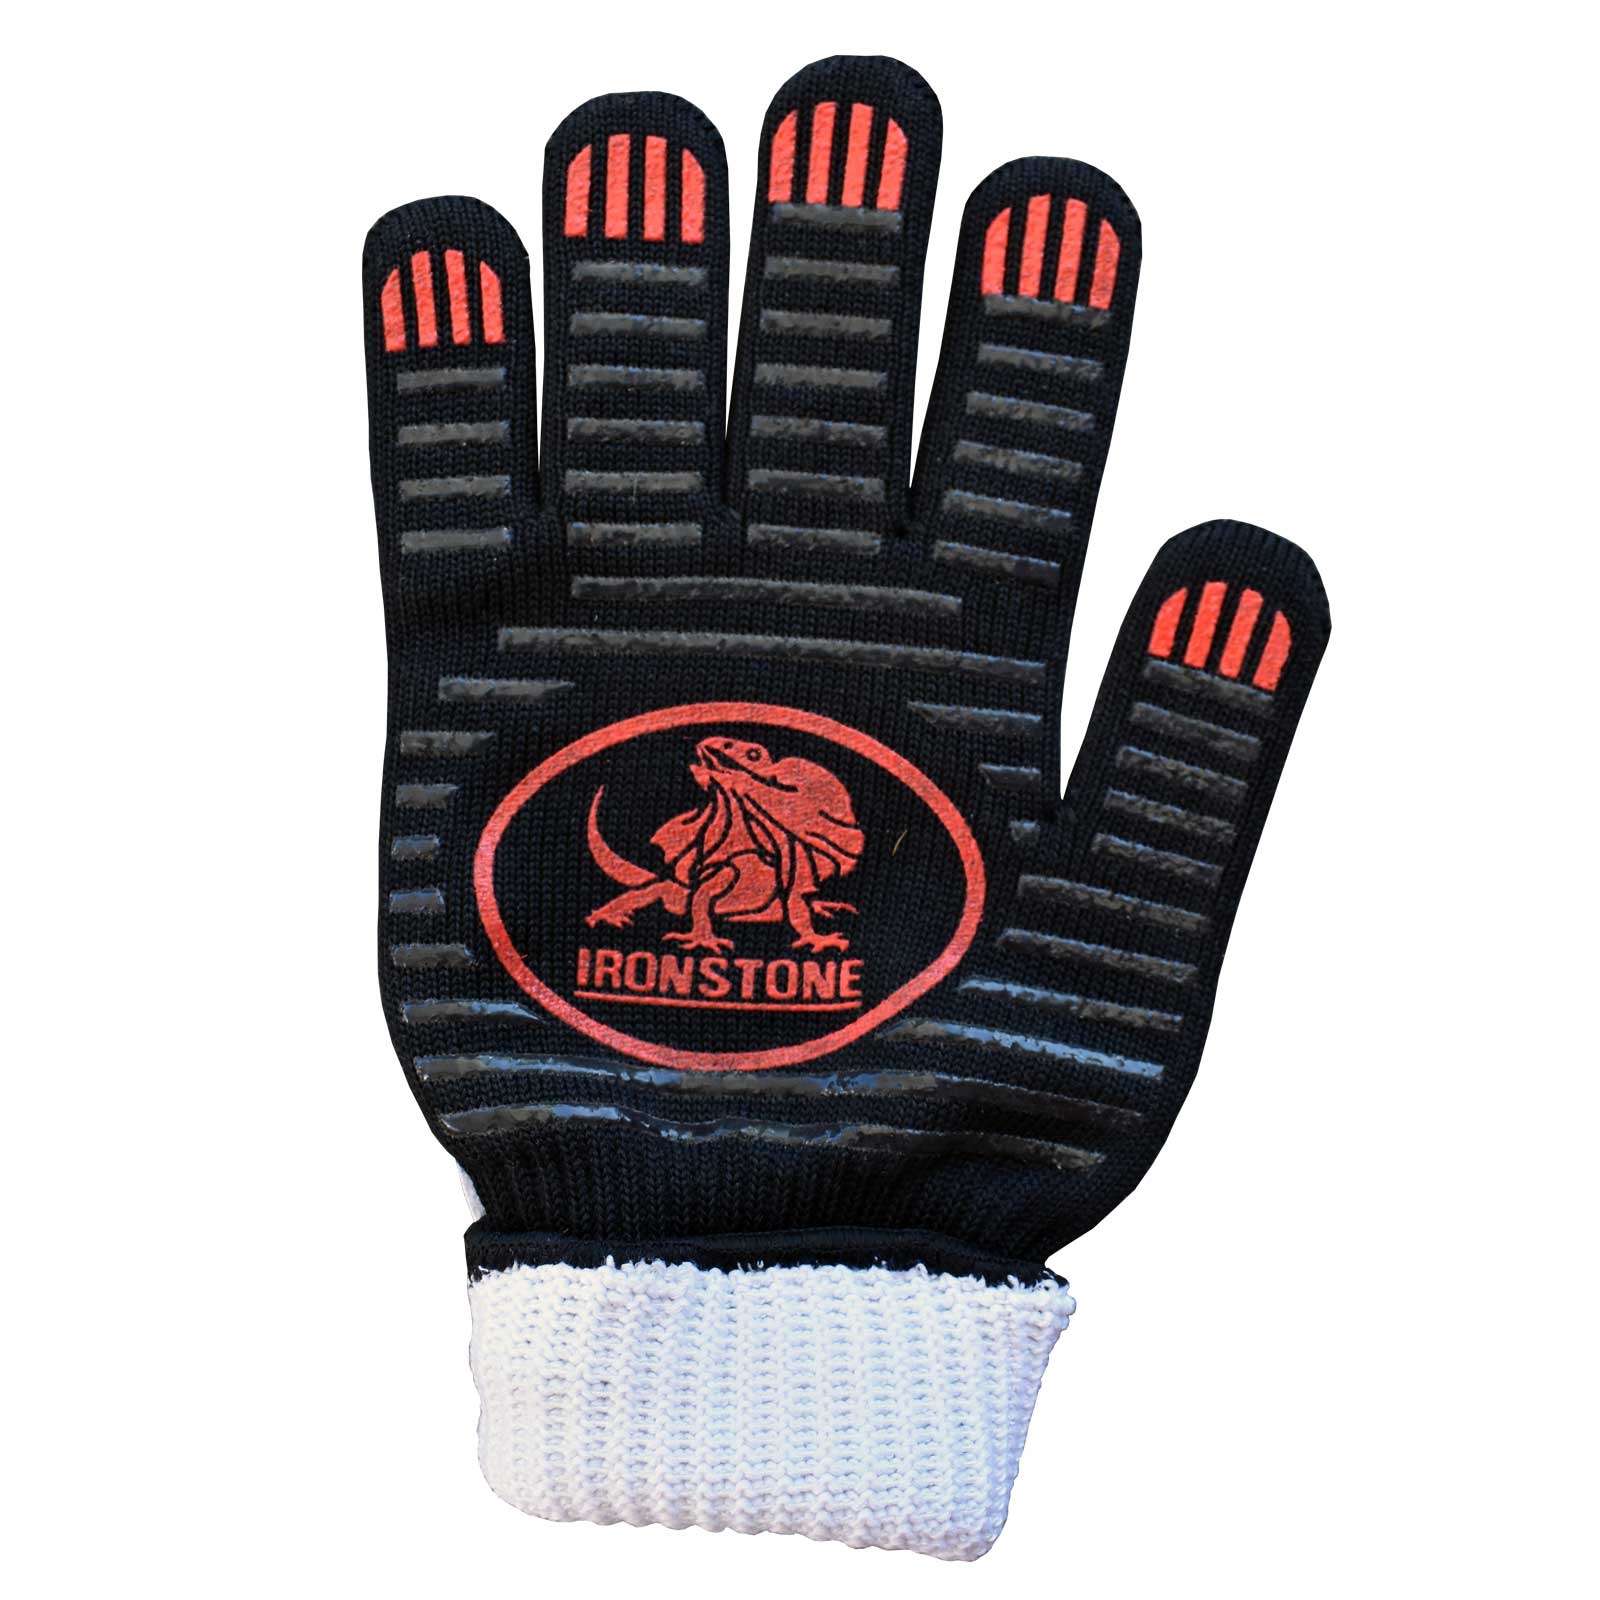 Ironstone-gloves-red7